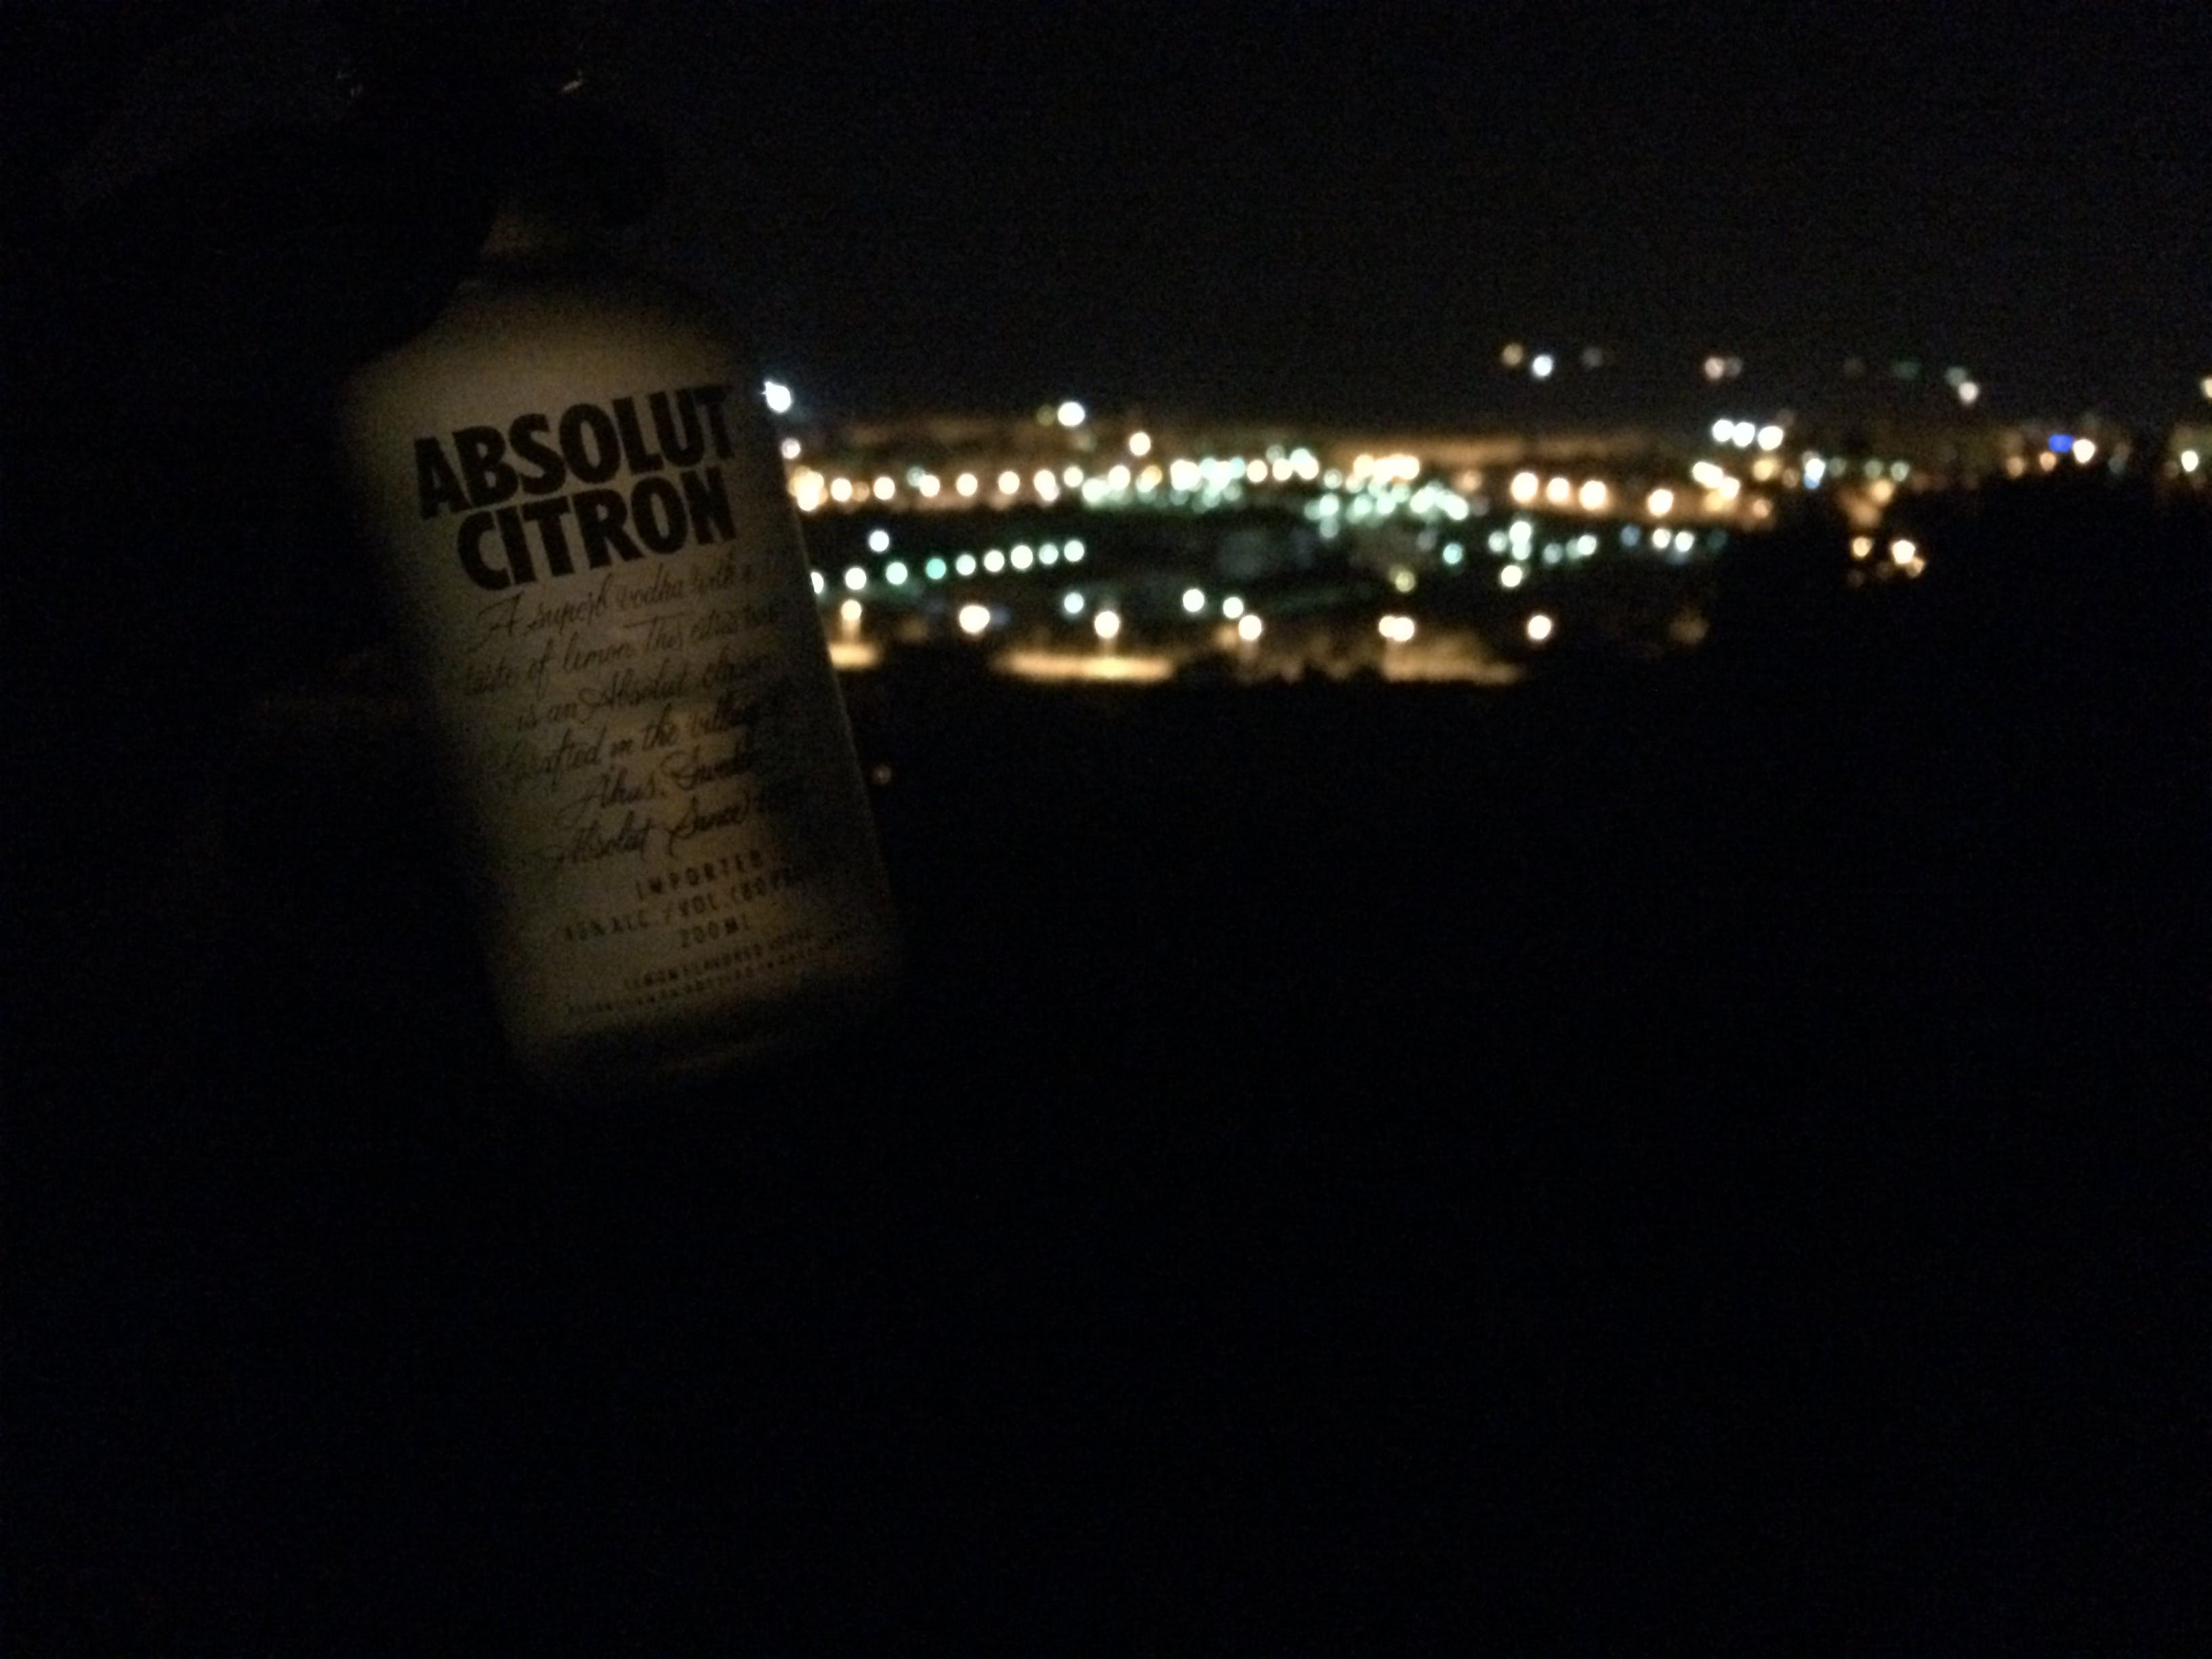 Free stock photo of absolut, alcohol bottles, city, city lights